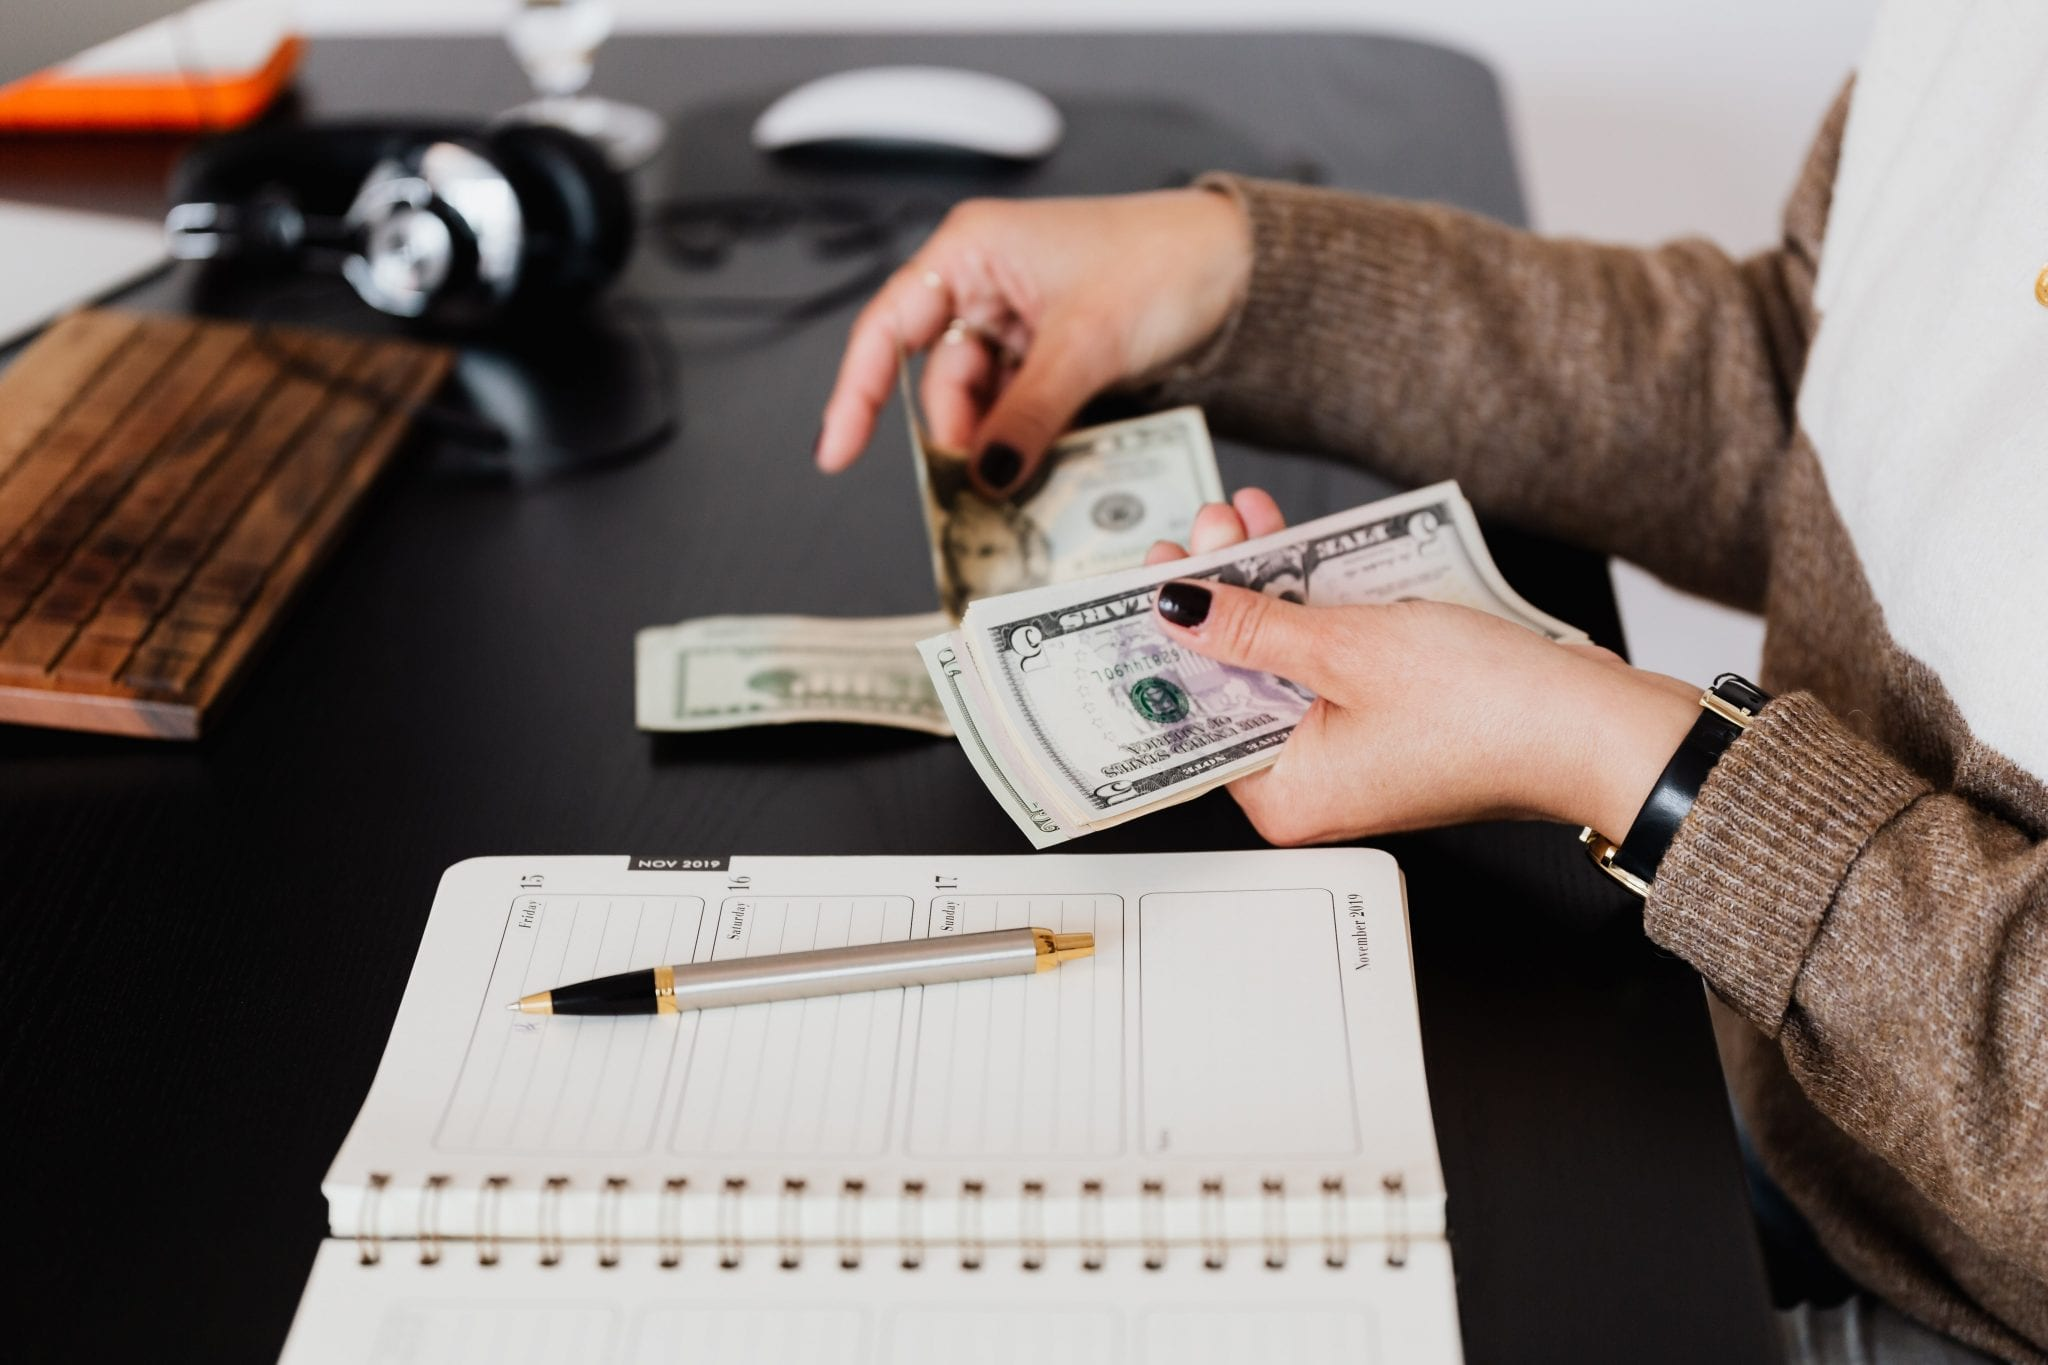 Strengthen Your Budgeting Resolve by Enlisting Your Daily Planner